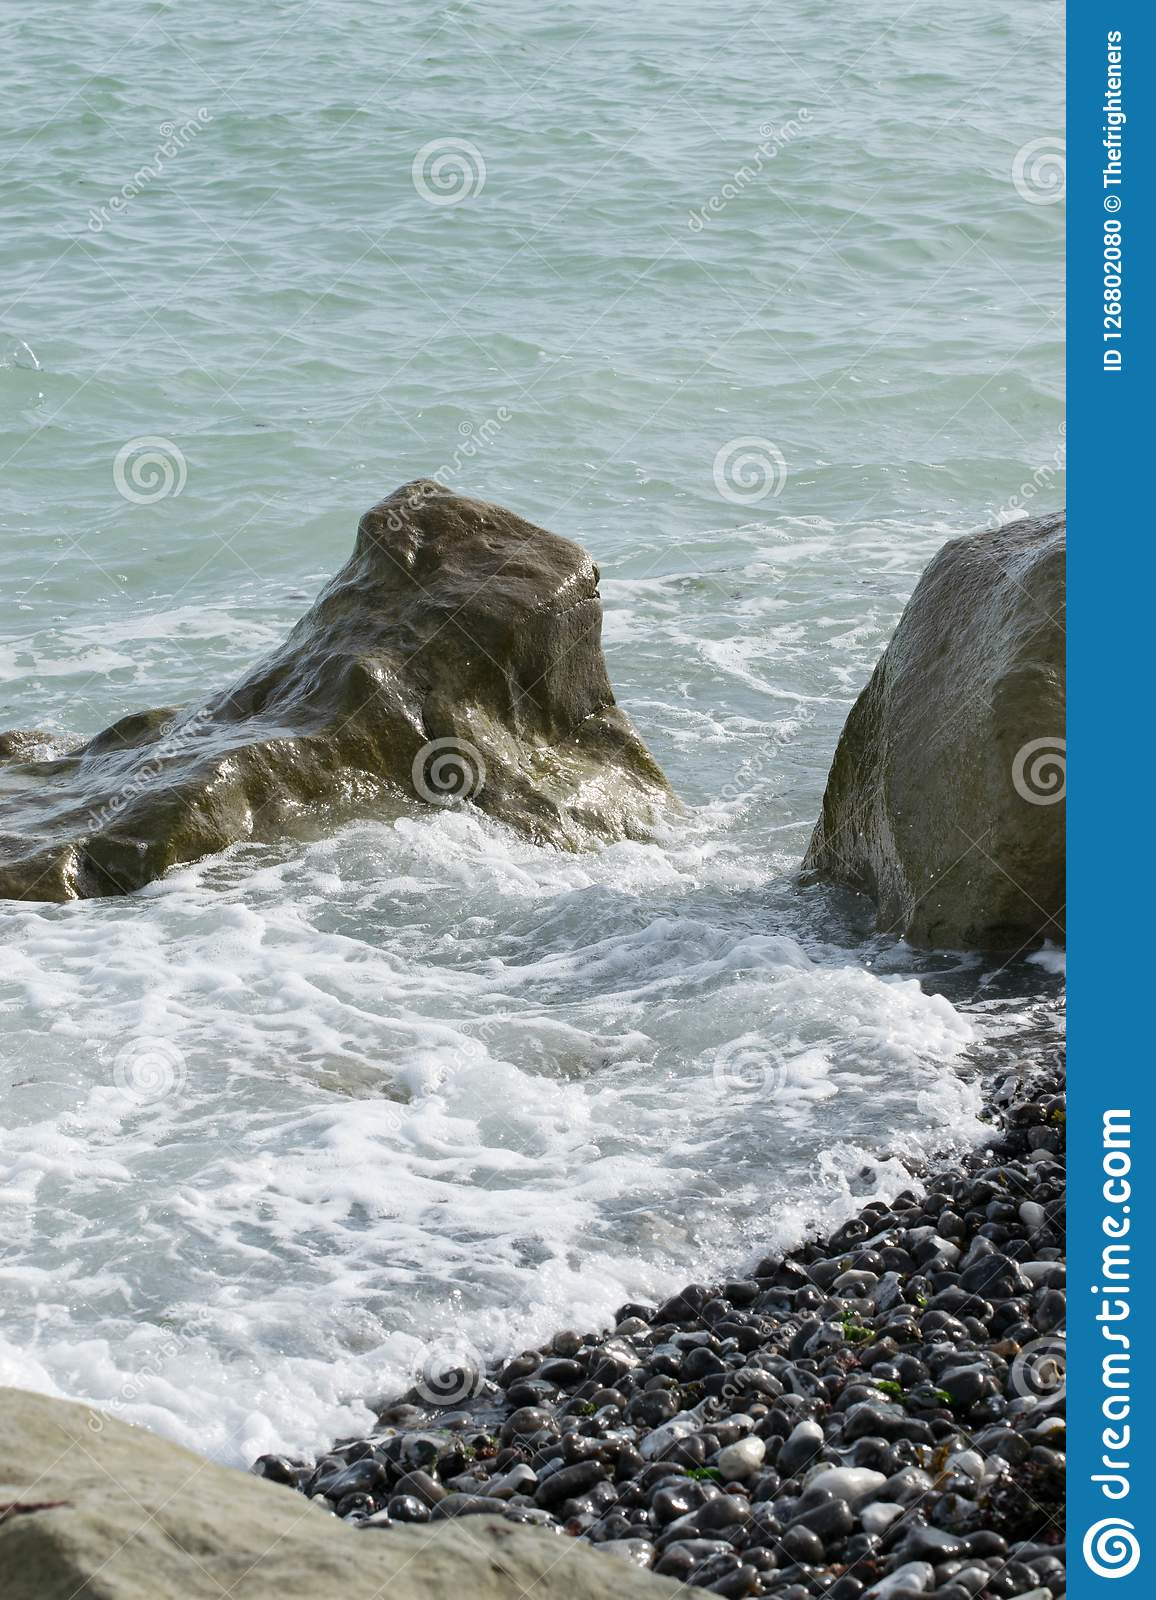 Sea Tide Off And Leaving The Rock Out Stock Photo Image Of